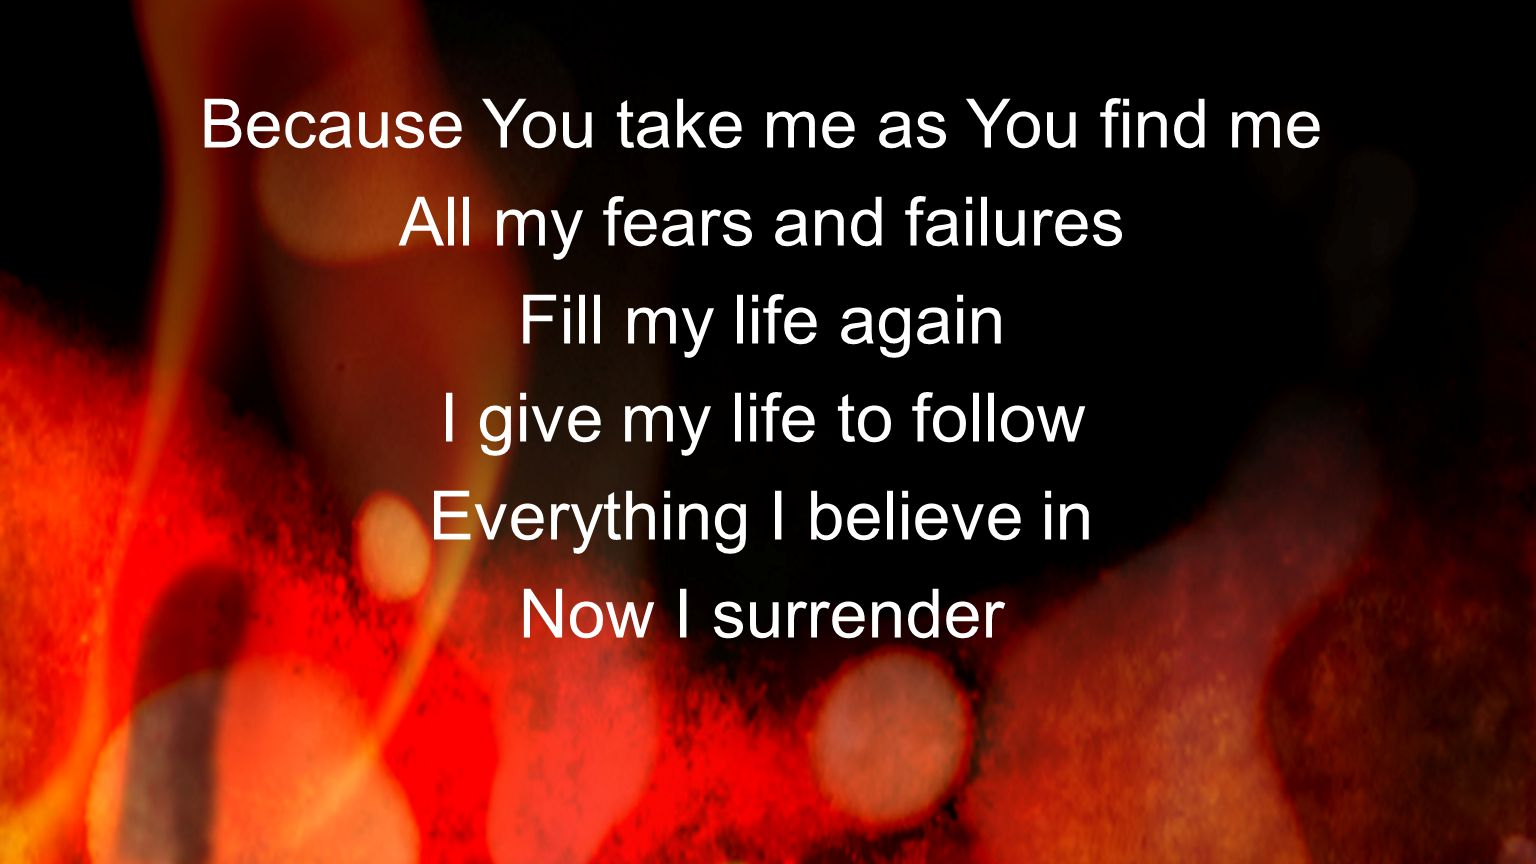 Because You take me as You find me All my fears and failures Fill my life again I give my life to follow Everything I believe in Now I surrender